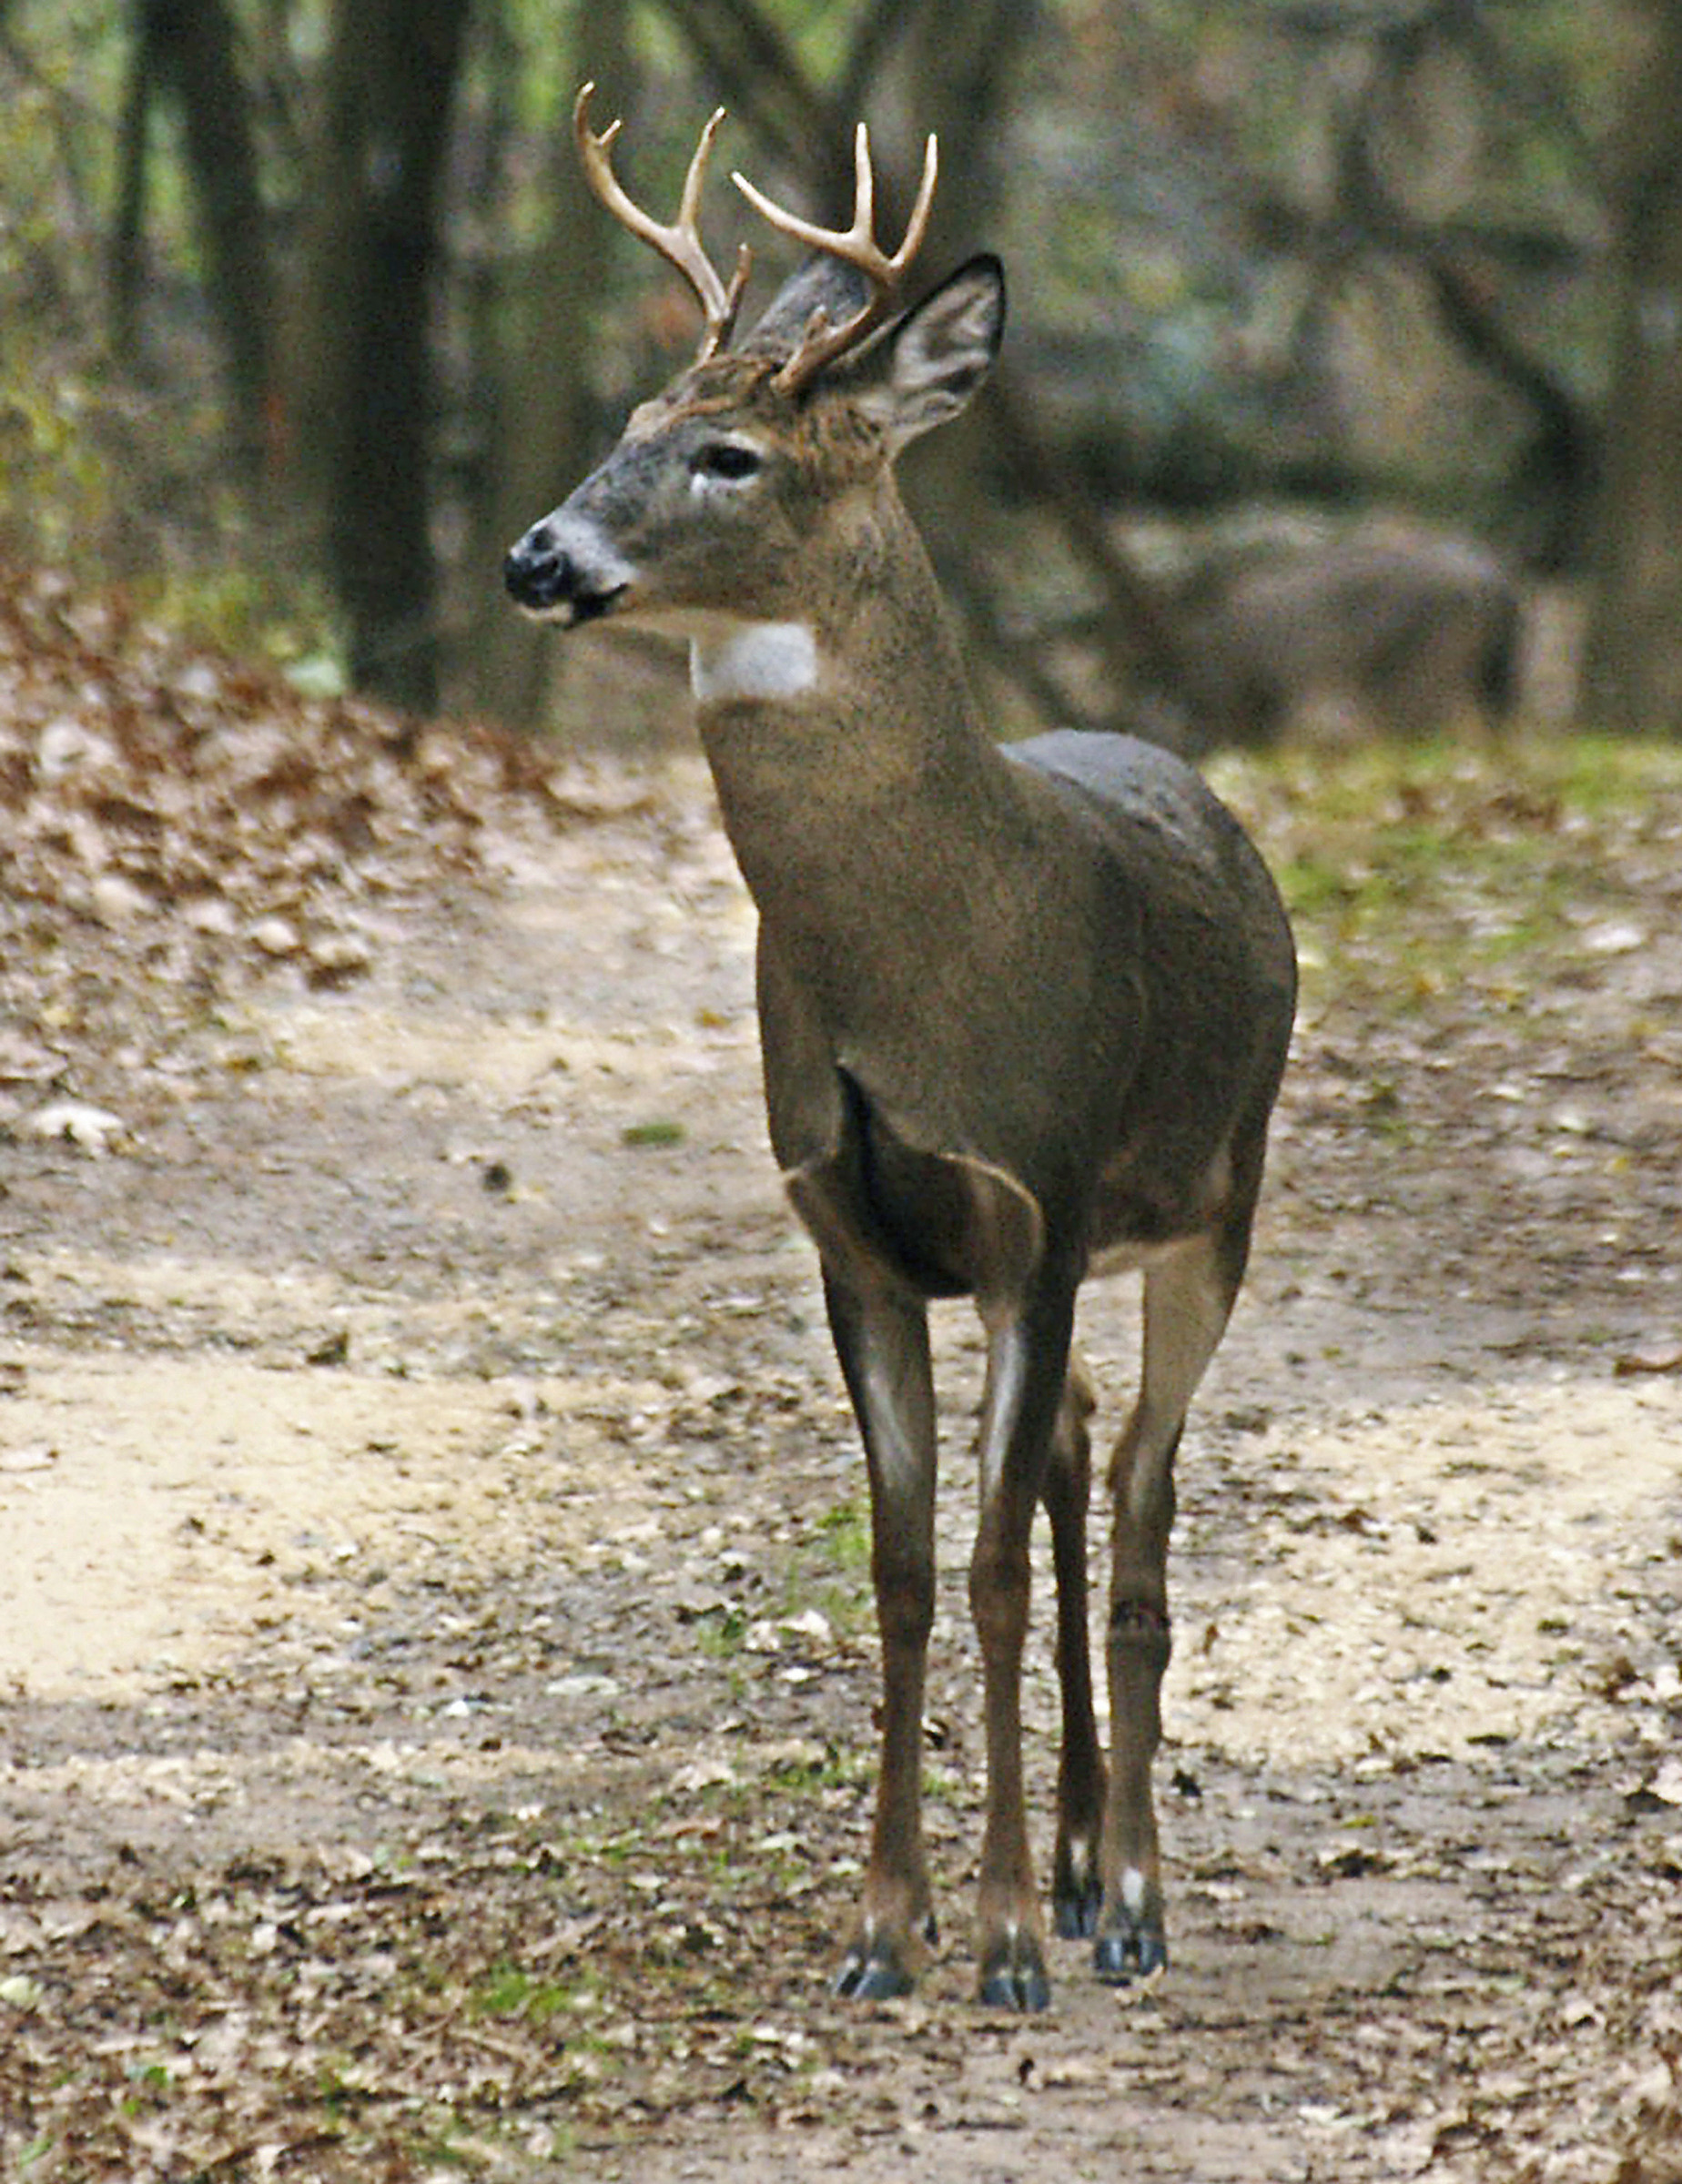 A Dangerous Deer Disease could spread to Humans